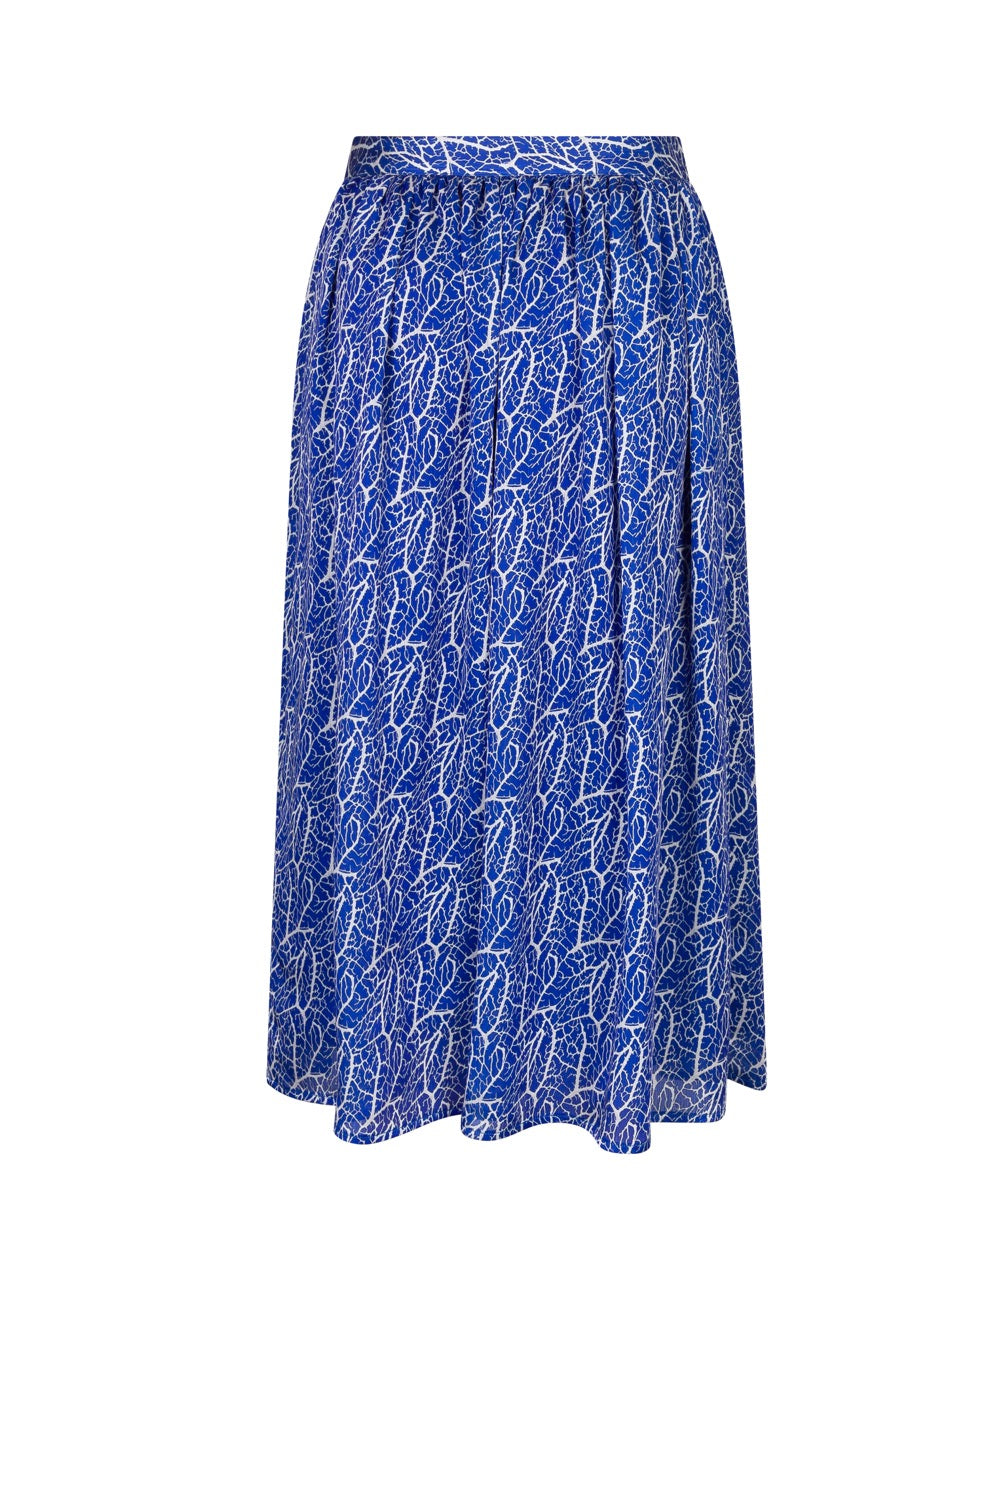 Orso skirt in crépine print